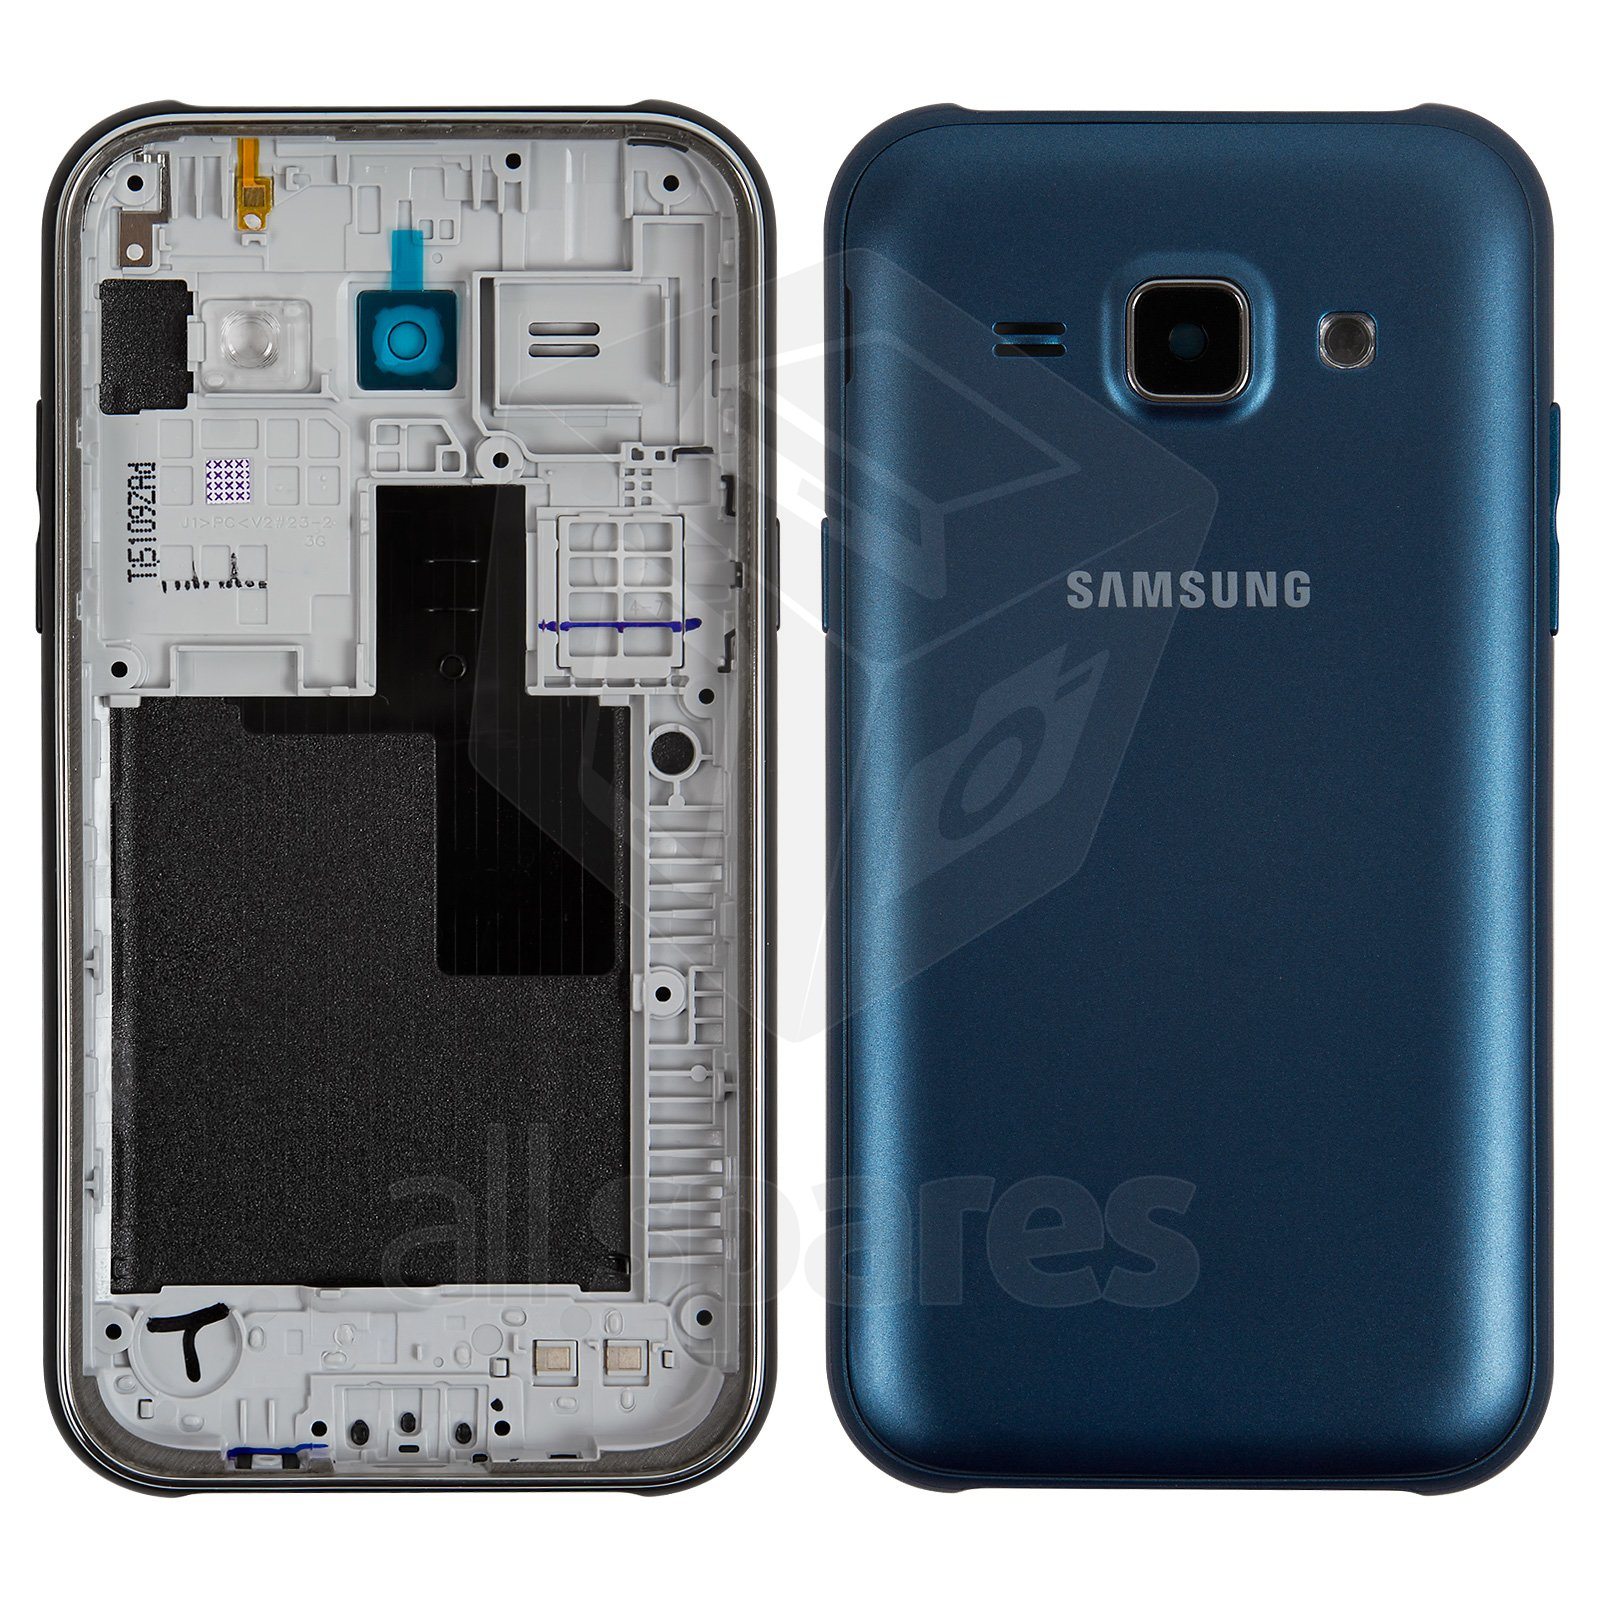 Housing For Samsung J100h Ds Galaxy J1 Cell Phone Dark Blue All J100 4 Gb Spares